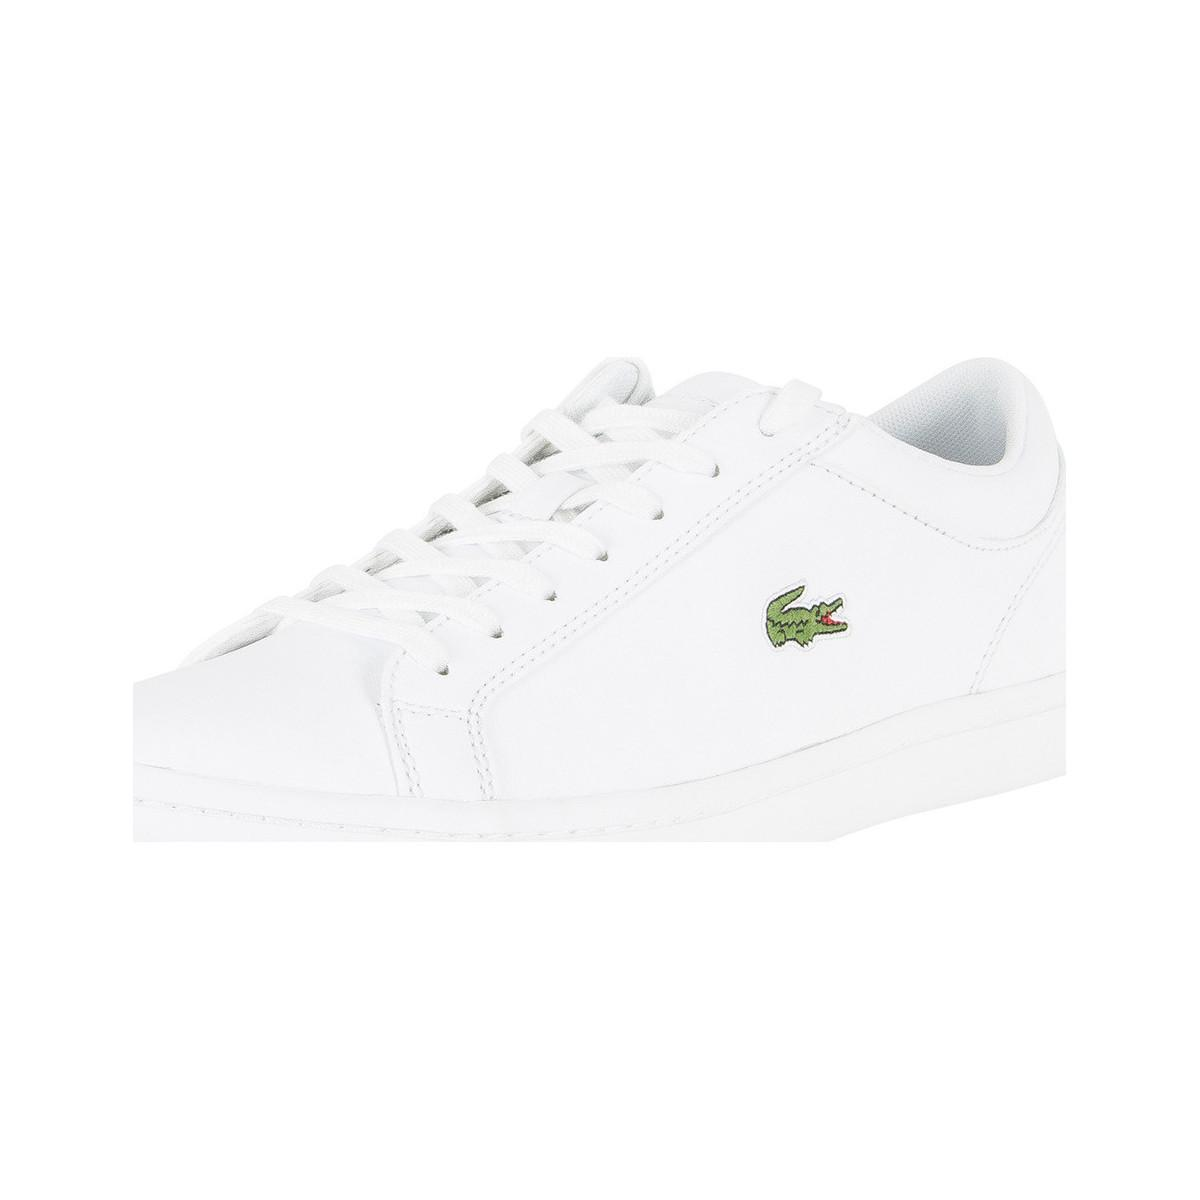 Lacoste Straightset Chukka 316 2 Trainers Color: White